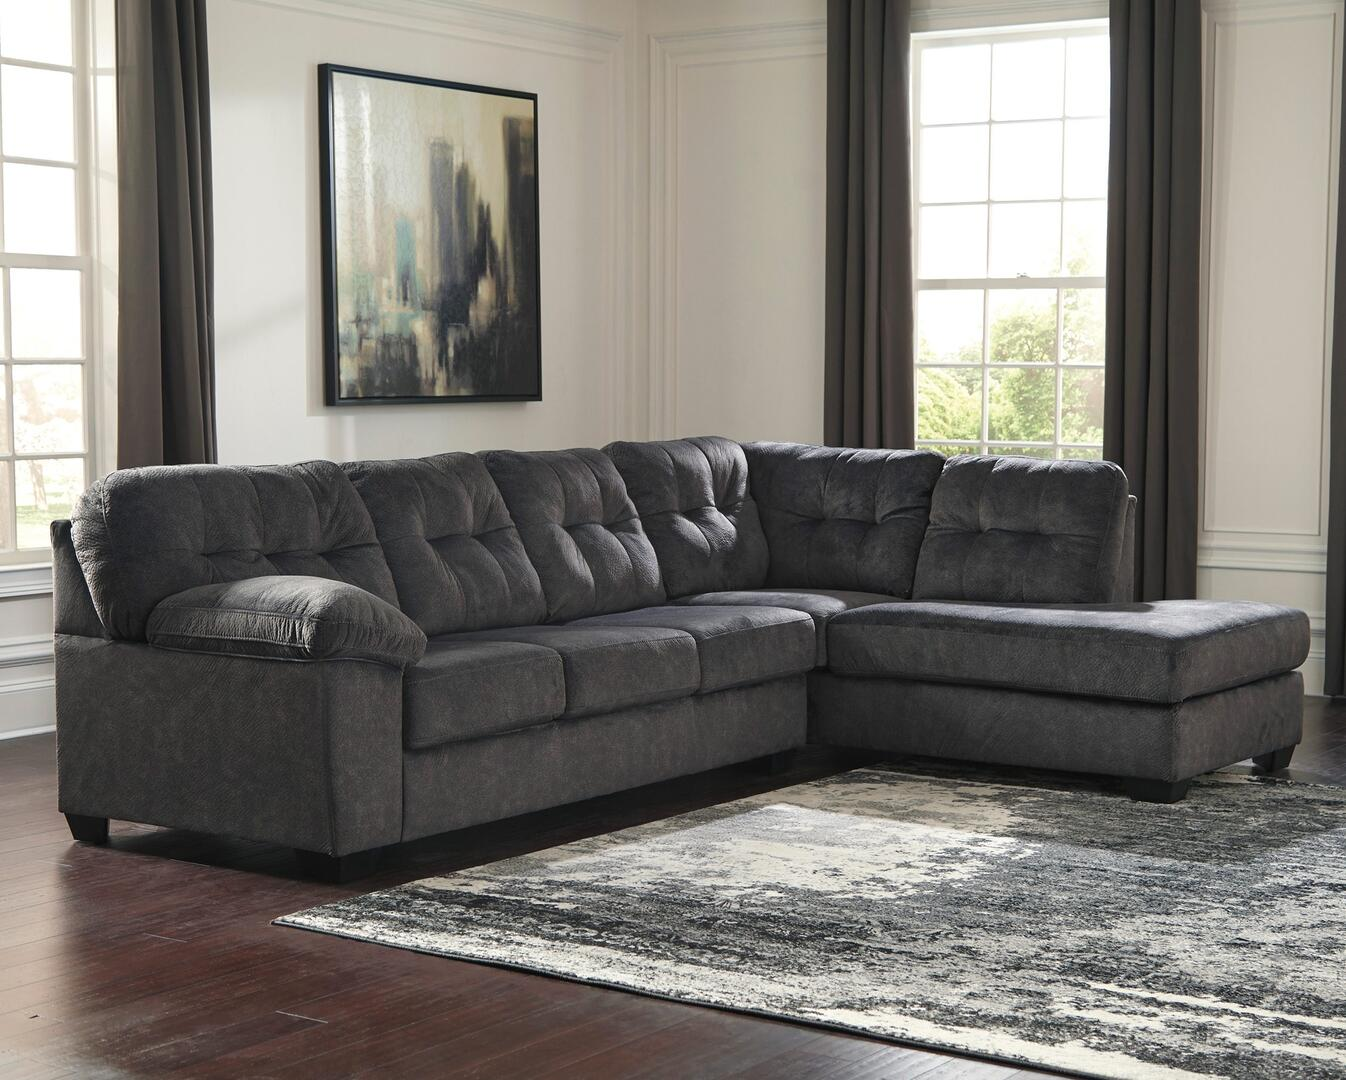 sectional sofa deals free shipping cheap leather sets in india signature design by ashley 705096617 accrington series